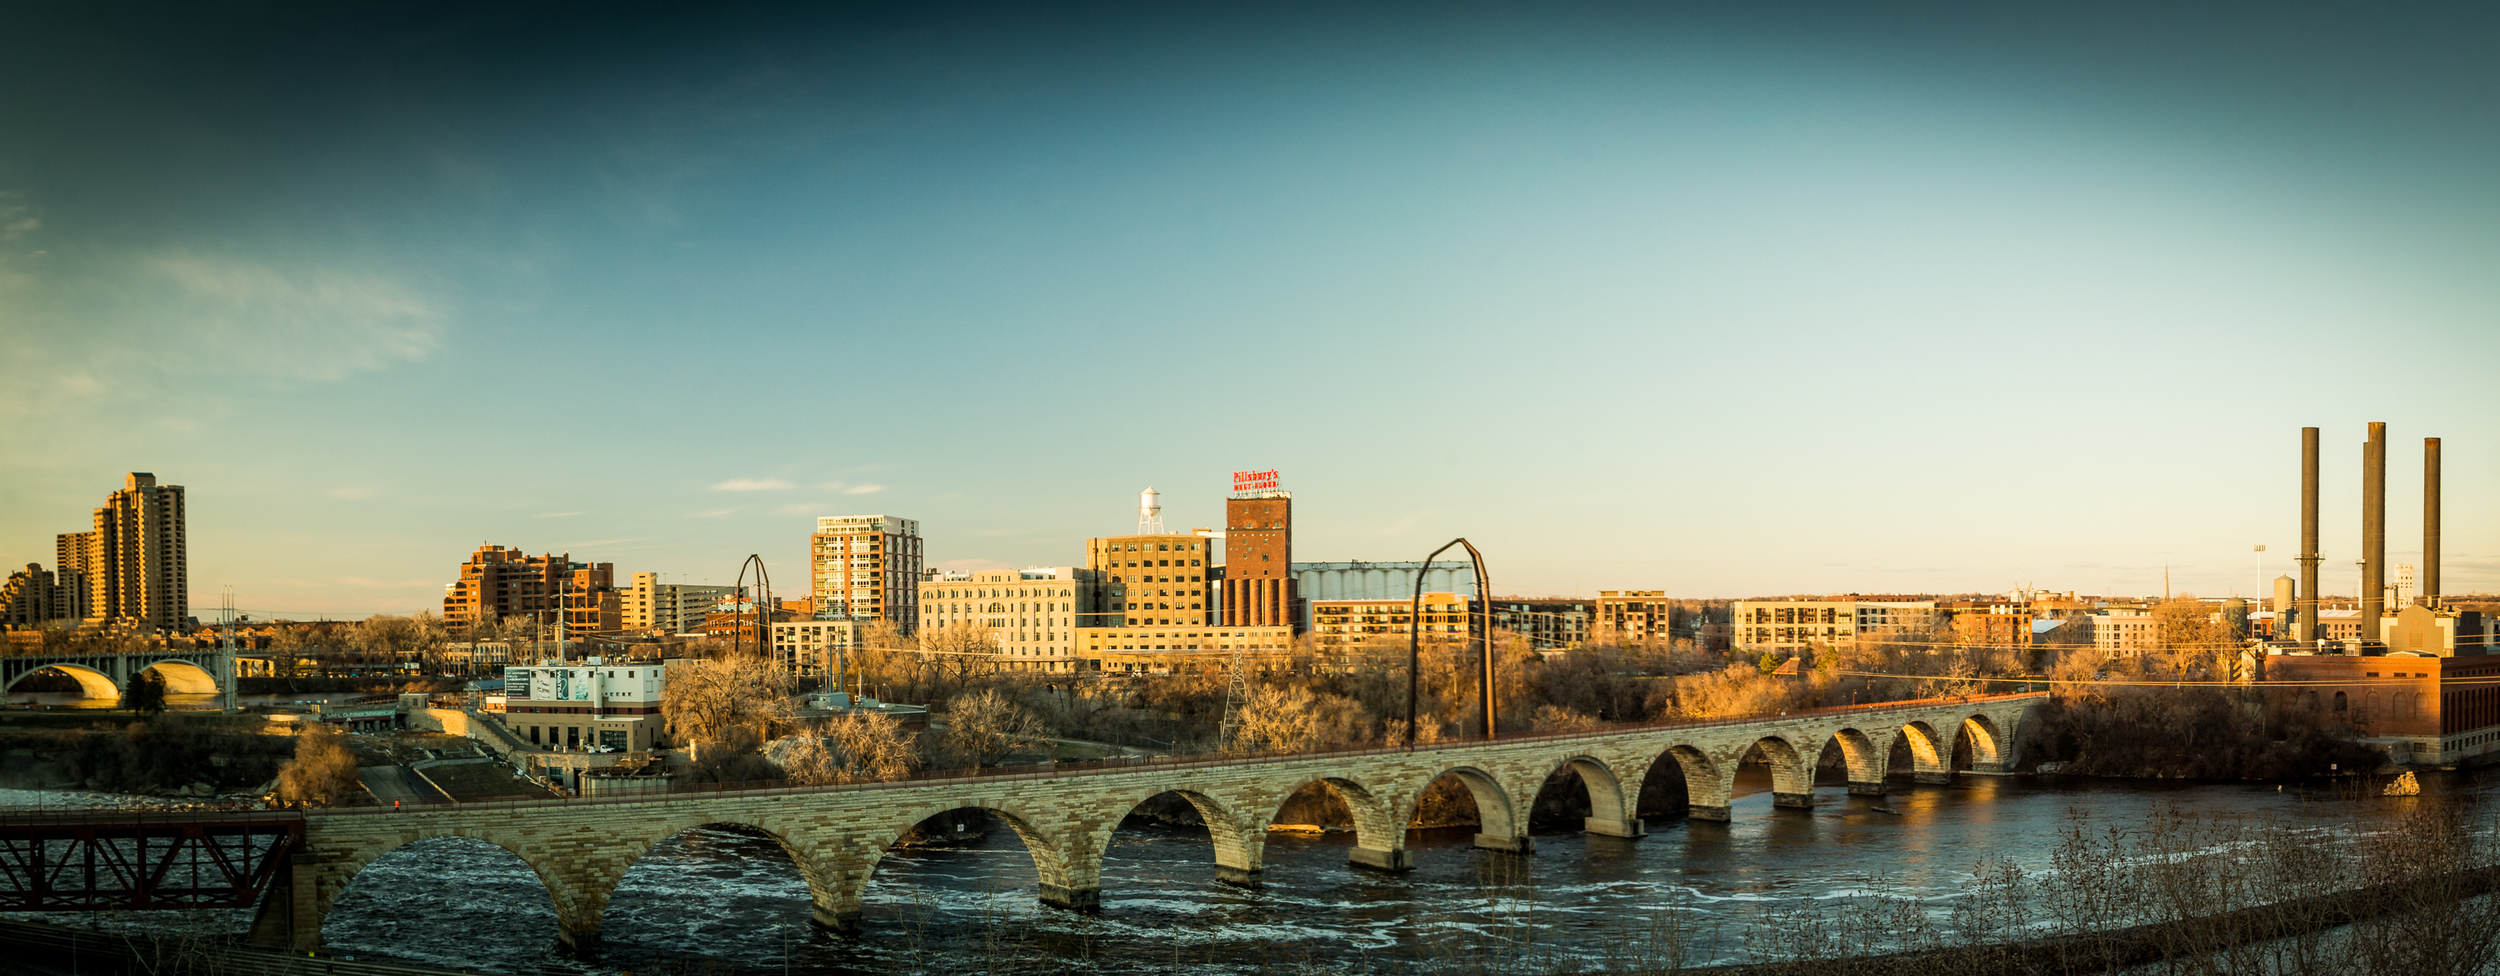 St. Anthony Falls.  Taken from the Endless Bridge at the Guthrie Theater.                                   1/100 sec @ f/7. w/ ISO 400.  35mm 2 Image Panorama